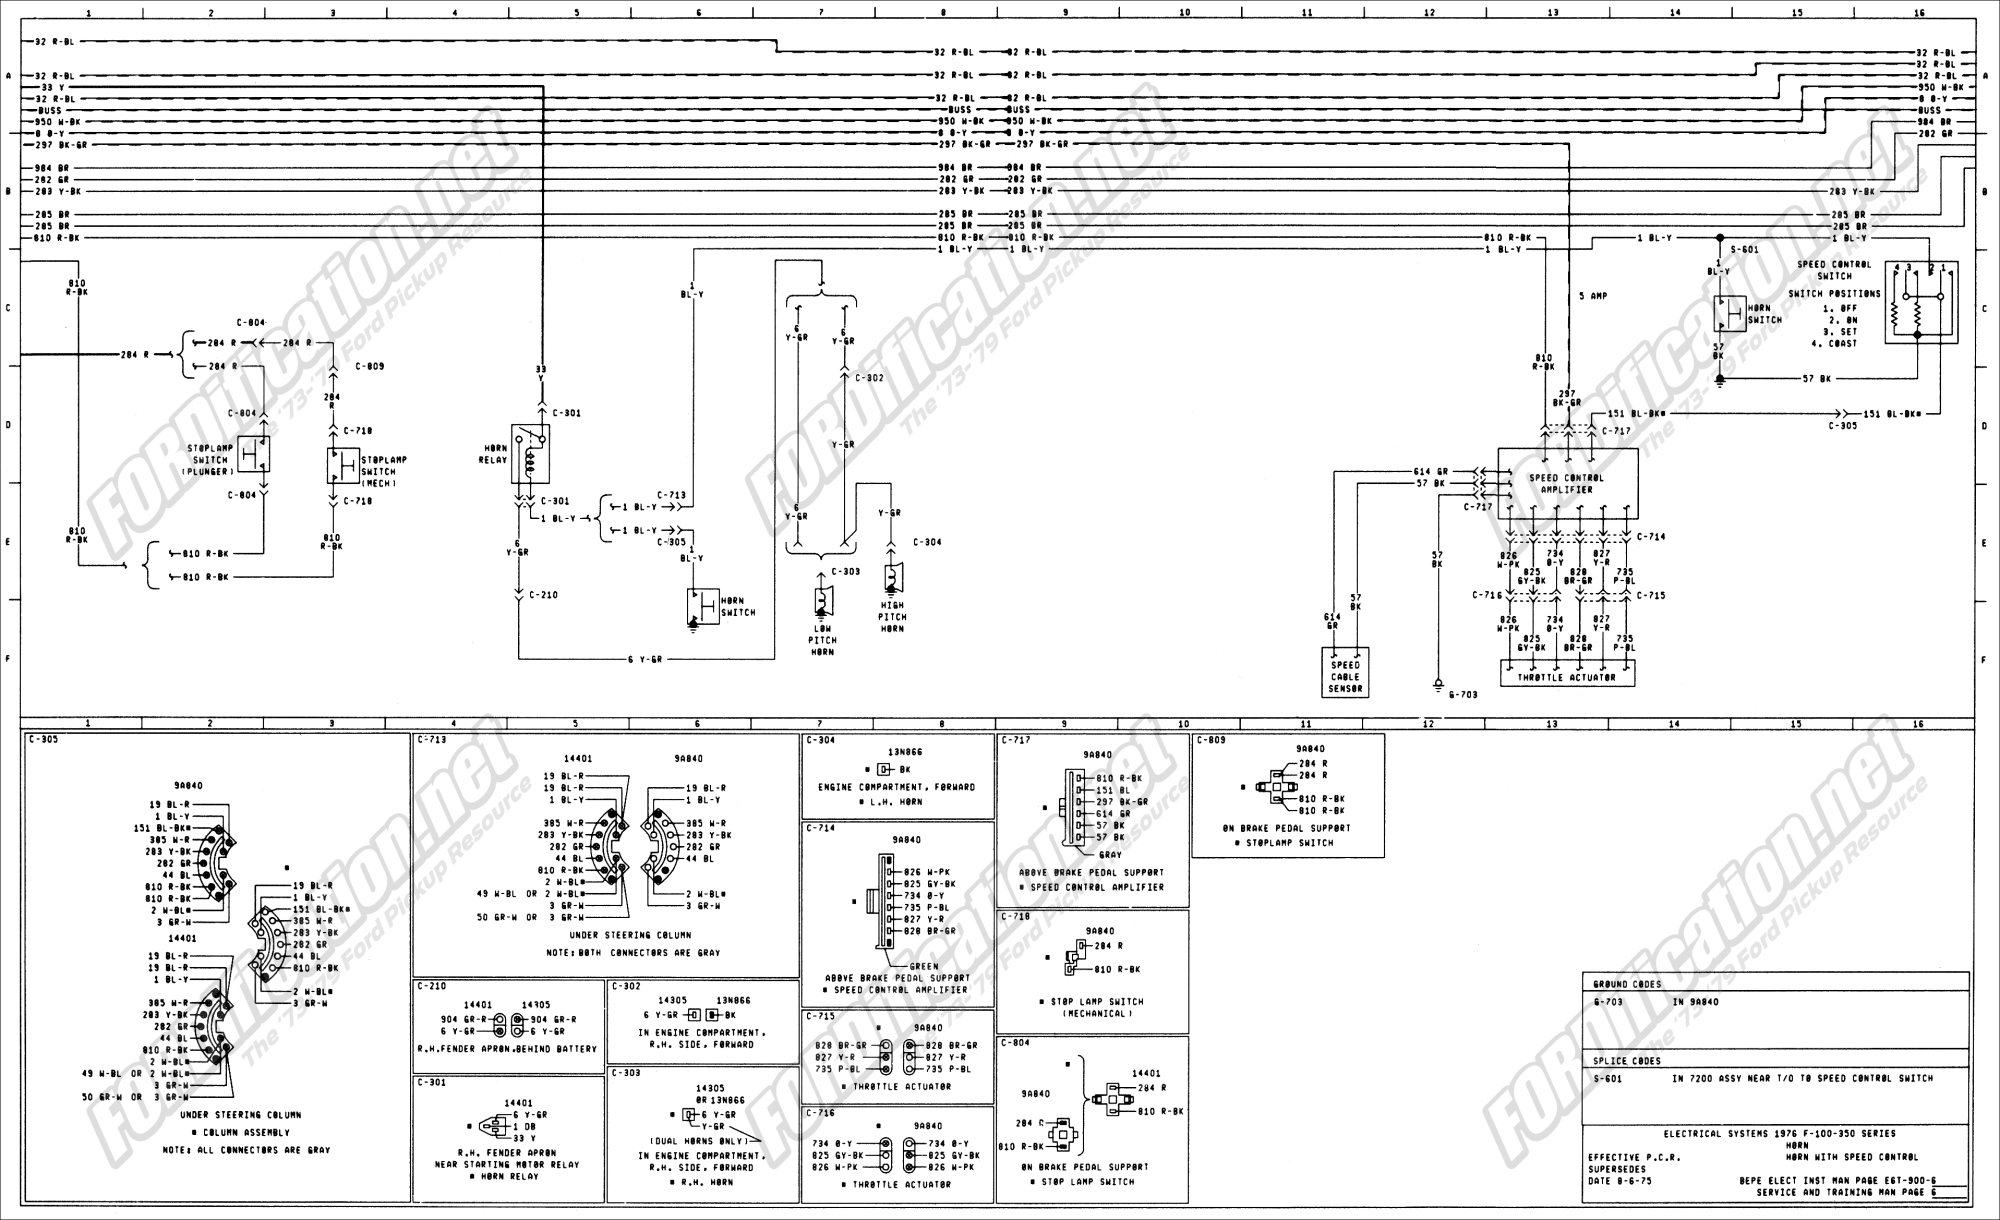 hight resolution of 1973 1979 ford truck wiring diagrams schematics fordification net rh fordification net 1966 ford f 250 wiring diagram 1976 ford f 250 wiring diagram